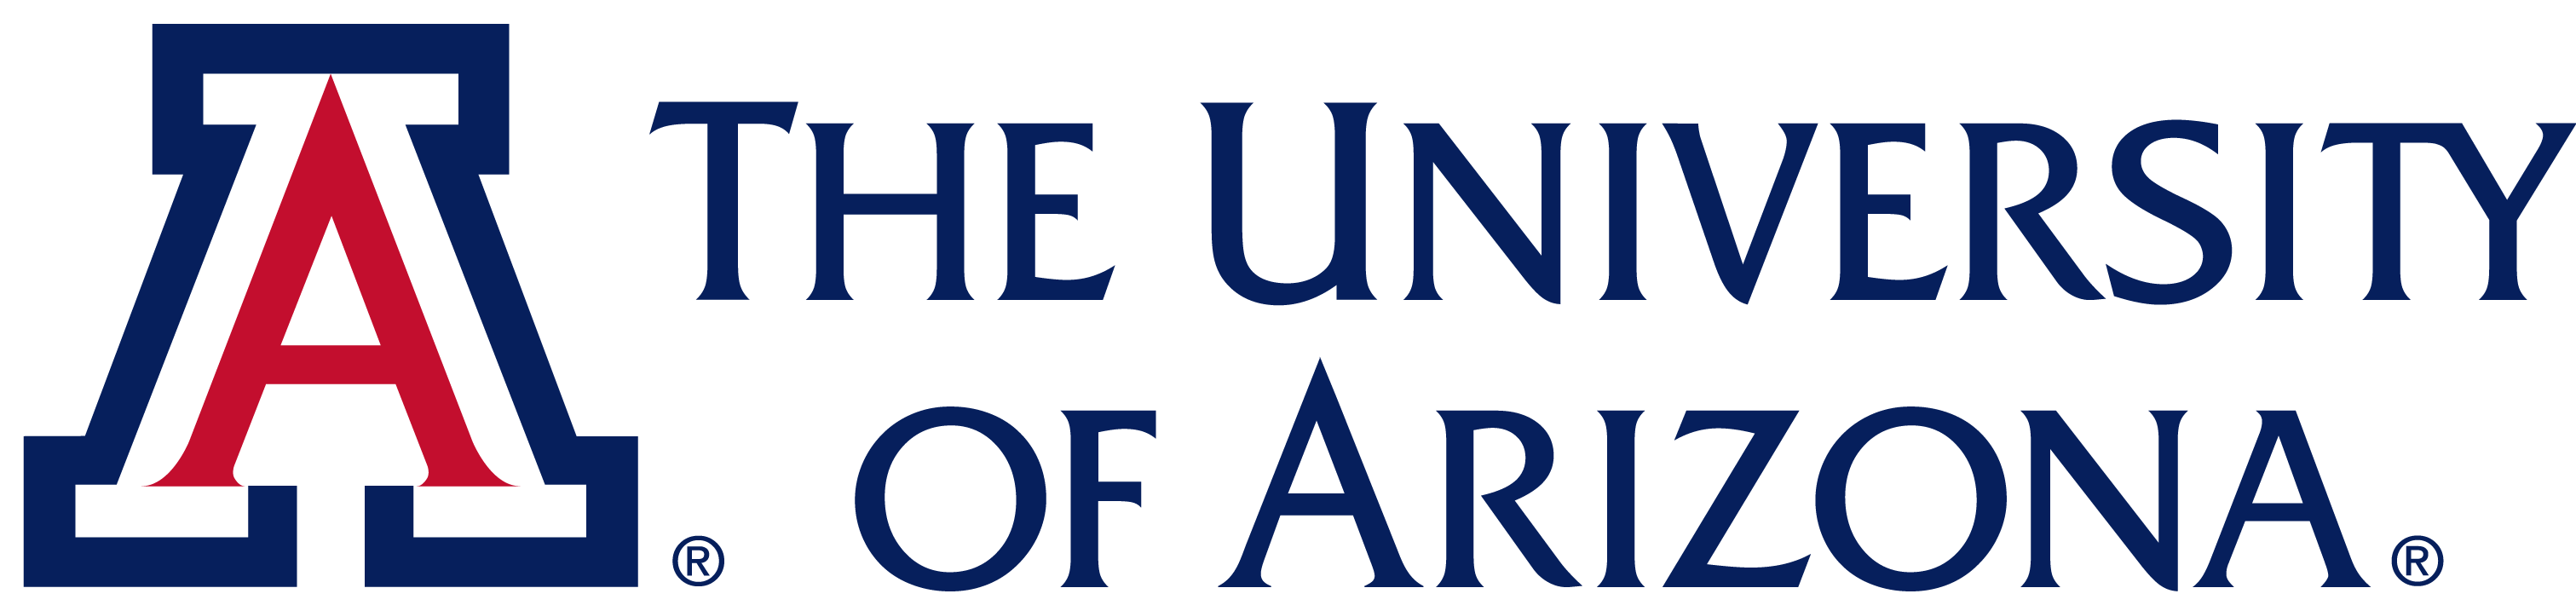 Image result for university of arizona logo